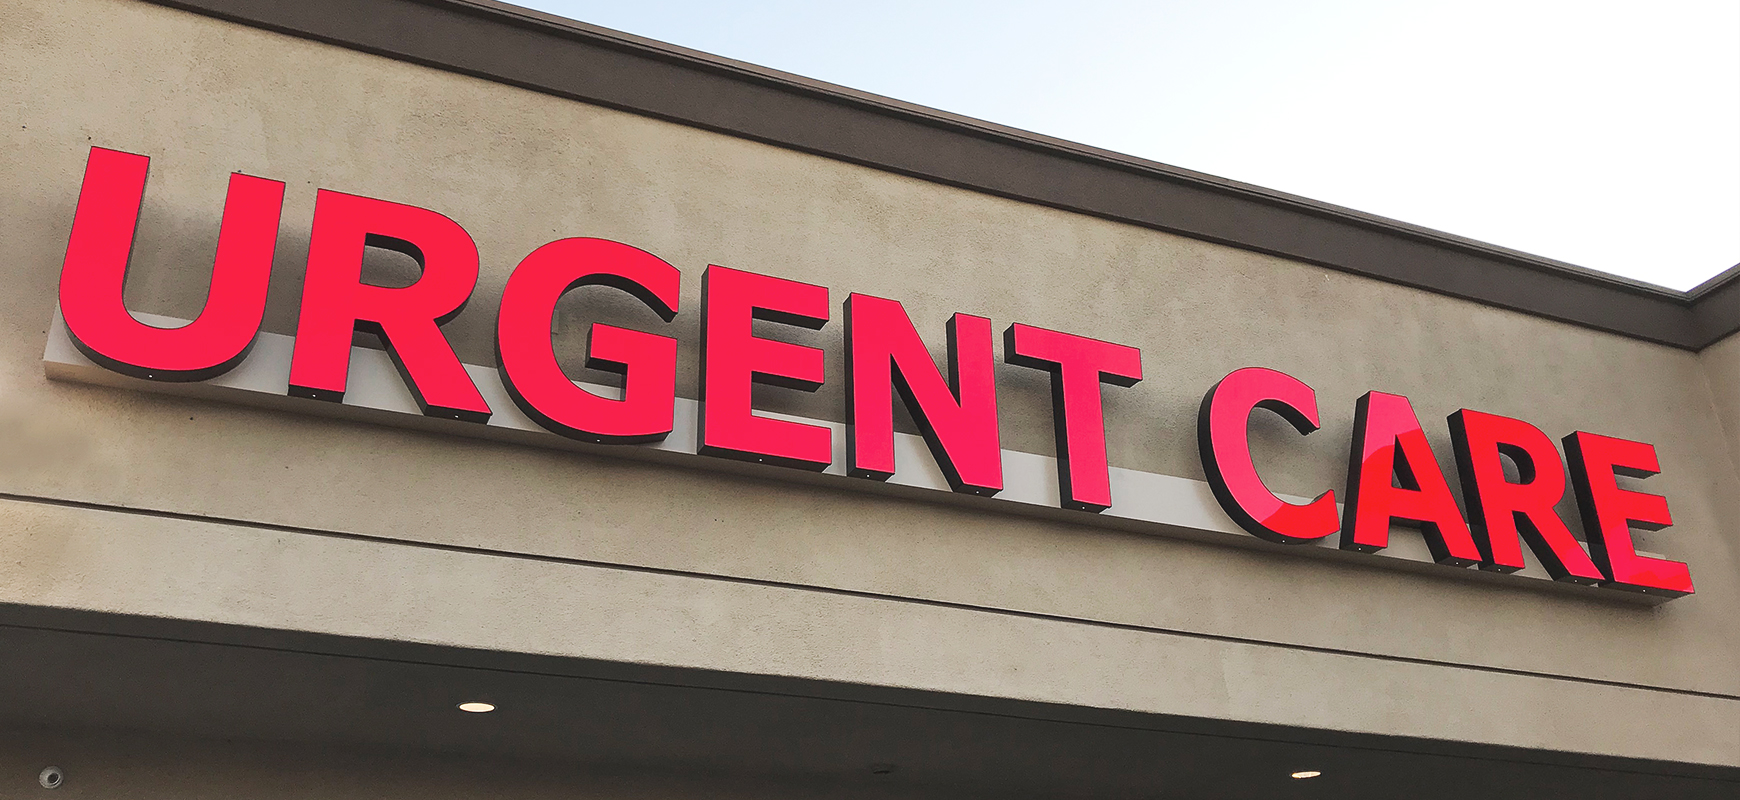 Urgent Care channel letter sign in red color displaying the company name made of aluminum and acrylic for business visibility